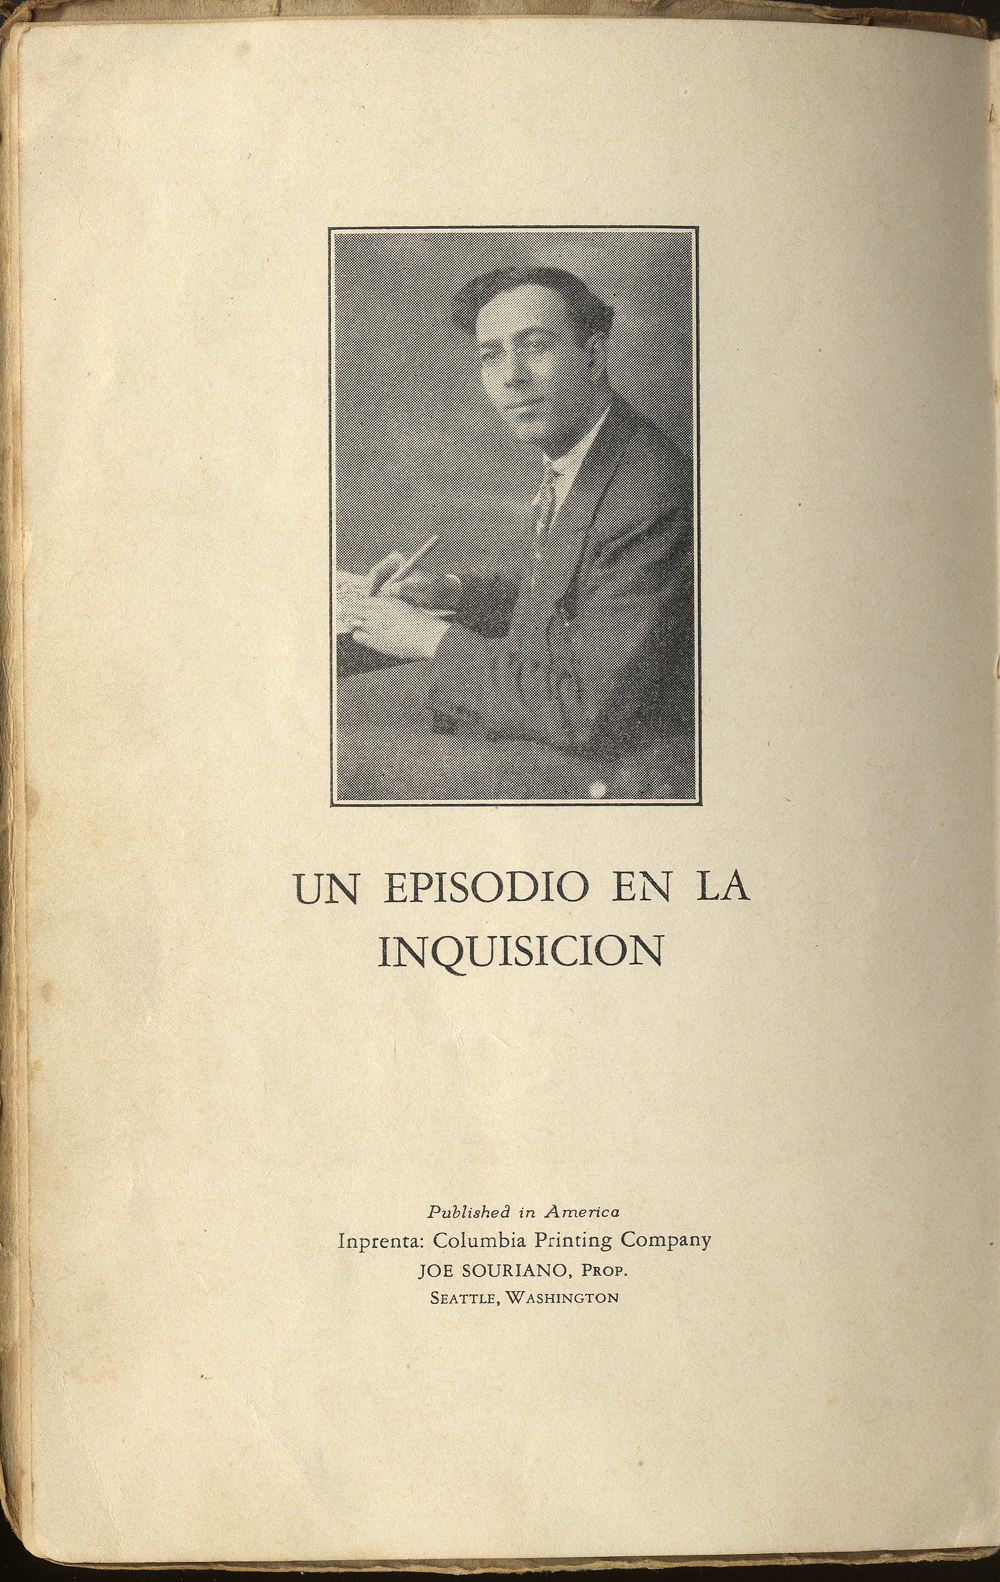 Albert Levy's novel, An Episode of the Inquisition, is the only Ladino novel known to have been published in Seattle. Image courtesy of the Sephardic Studies Digital Library.